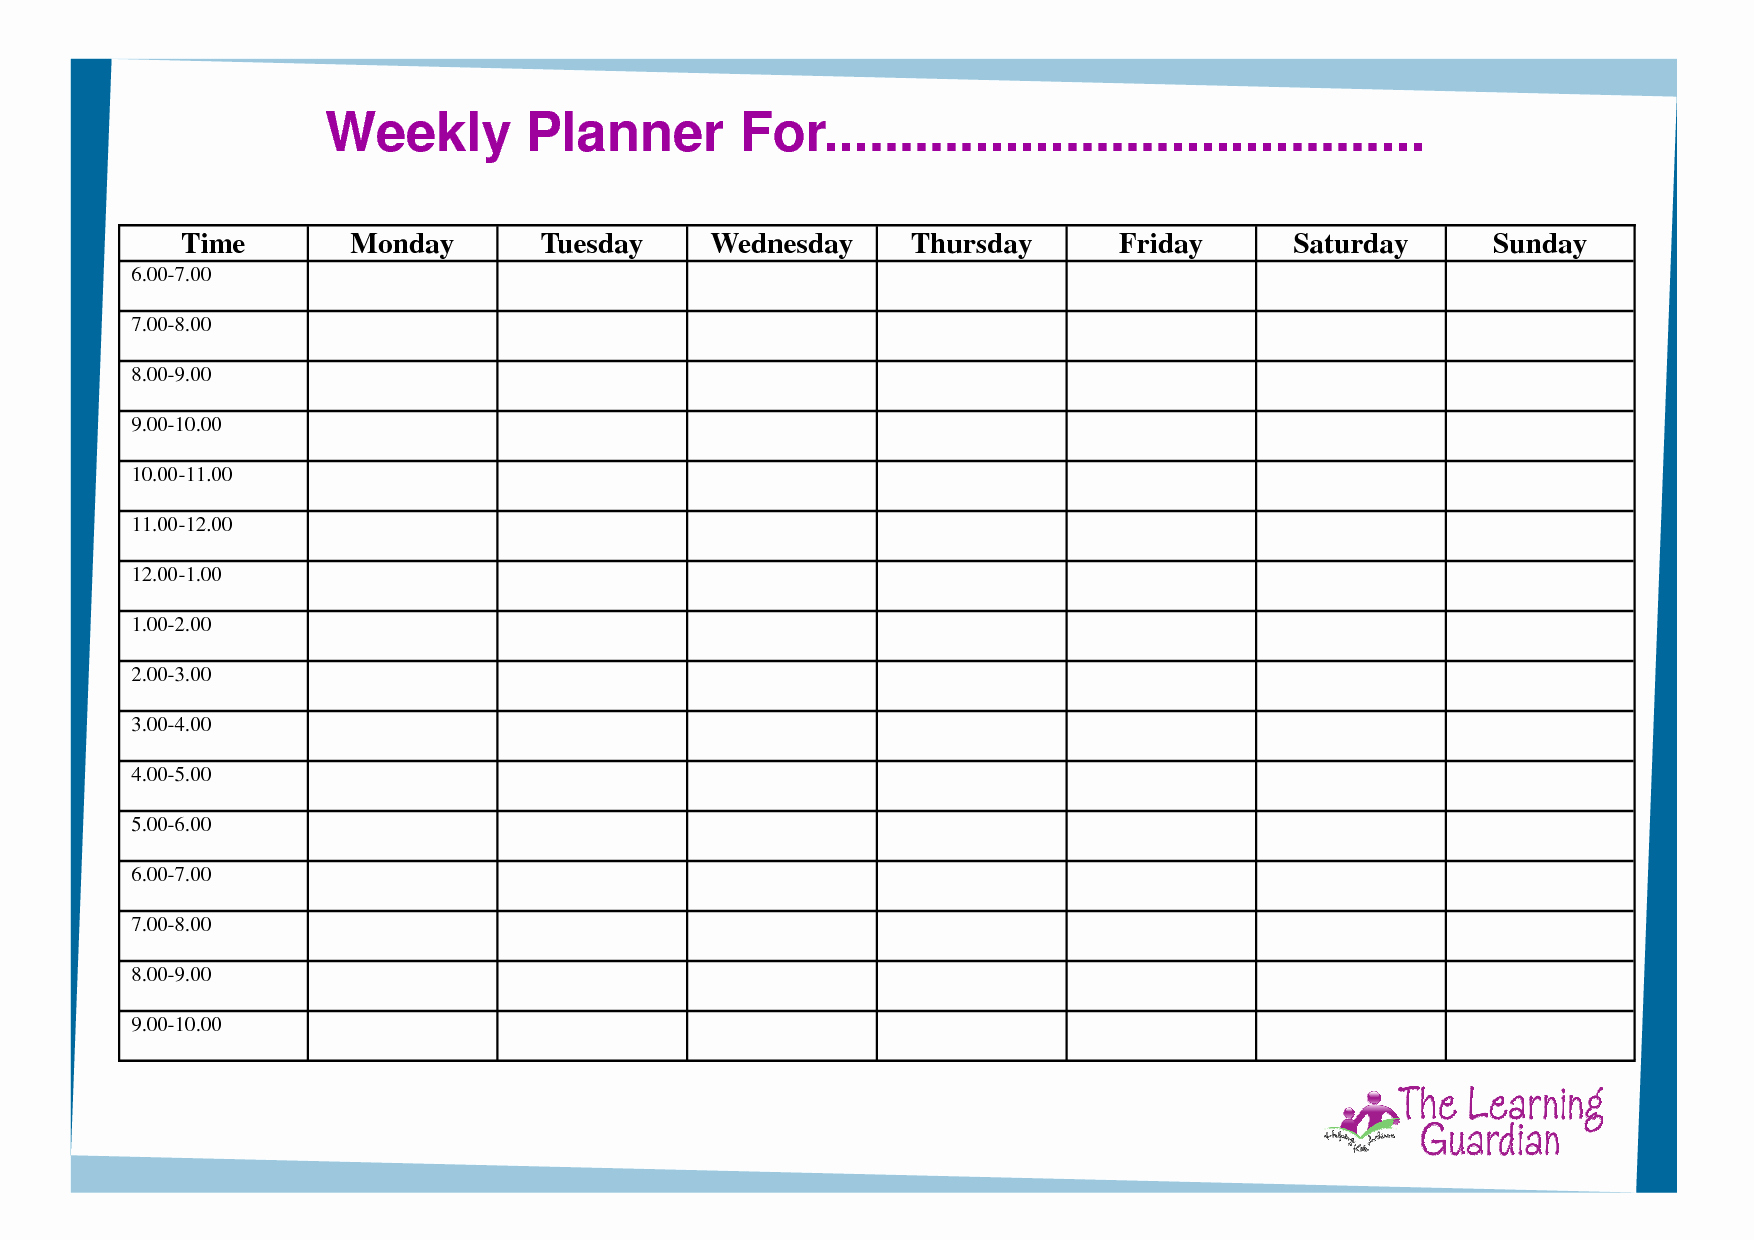 Weekly Schedule Template with Time Fresh Blank Weekly Calendars with Appointment Times Printable